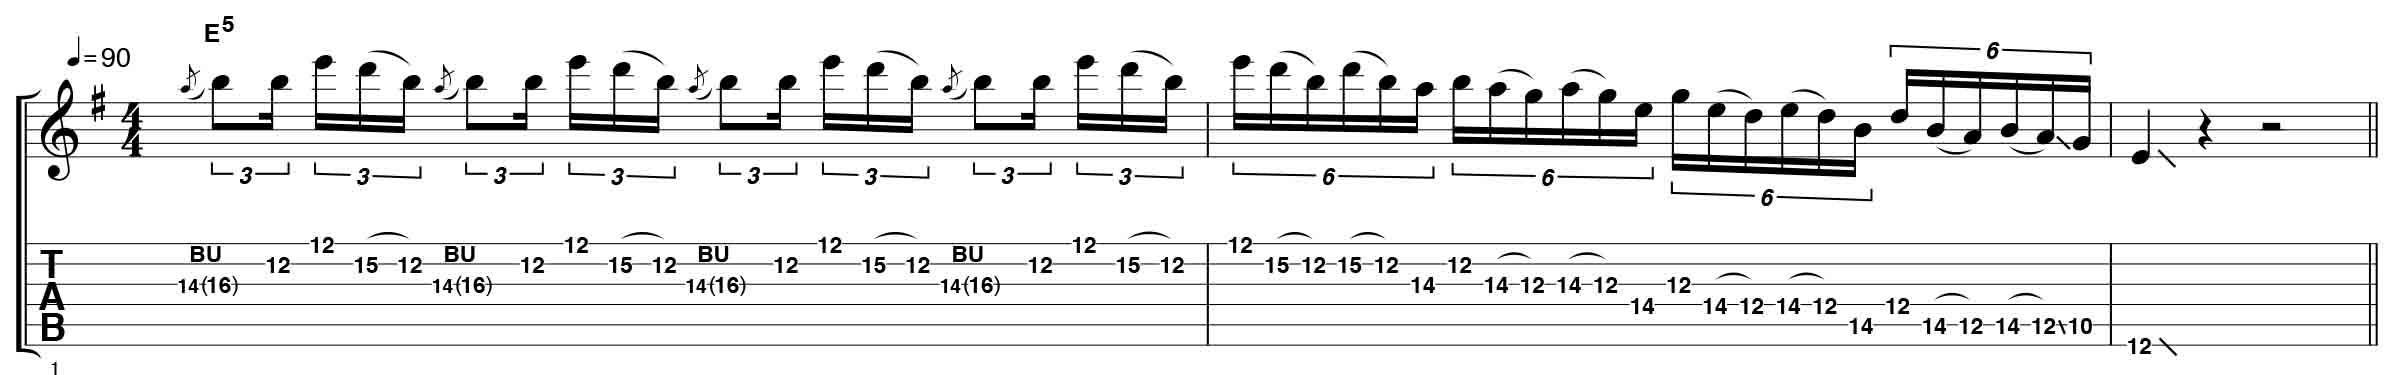 How To Play Guitar Like Jimmy Page Musicradar